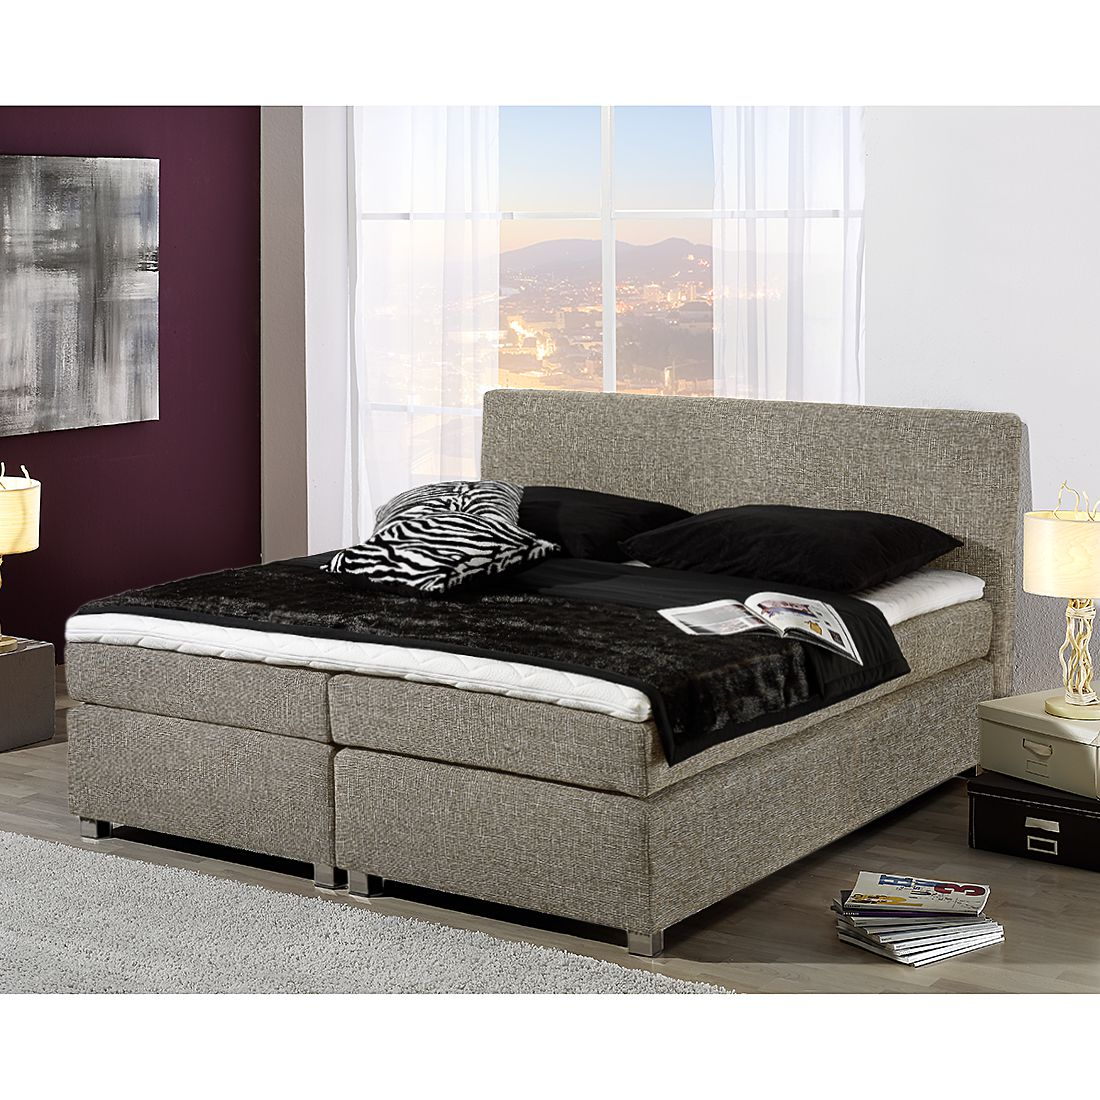 33 sparen boxspringbett sage ab 499 99 cherry m bel home24. Black Bedroom Furniture Sets. Home Design Ideas